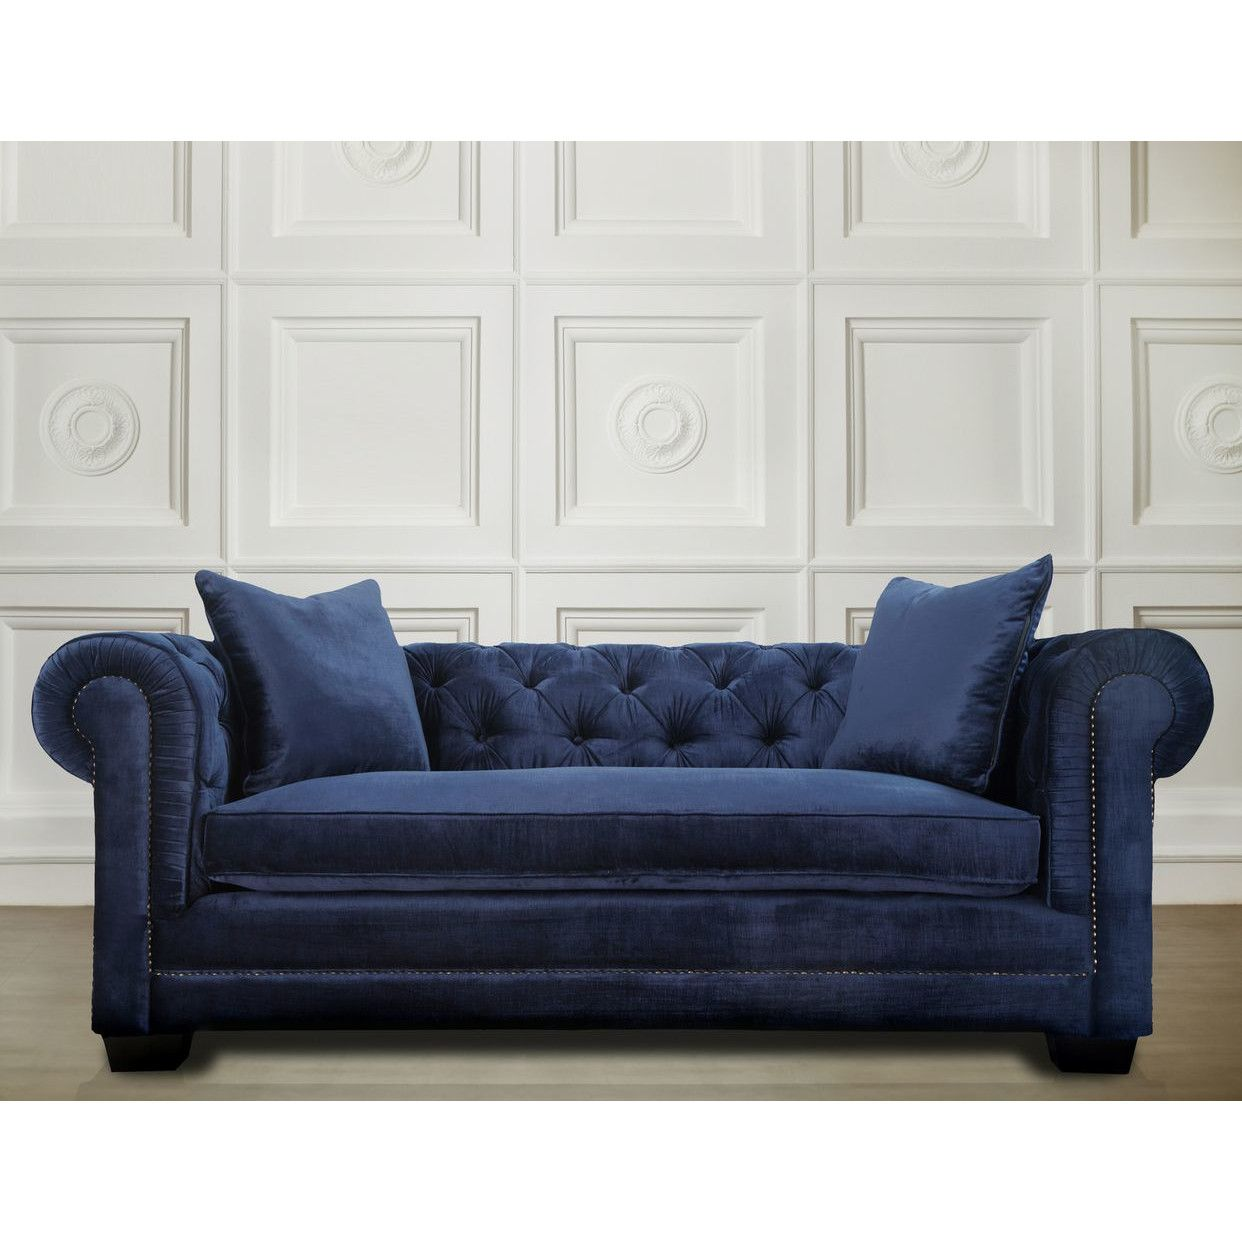 Modern Living Room Furniture Luxury Velvet Blue Sofa